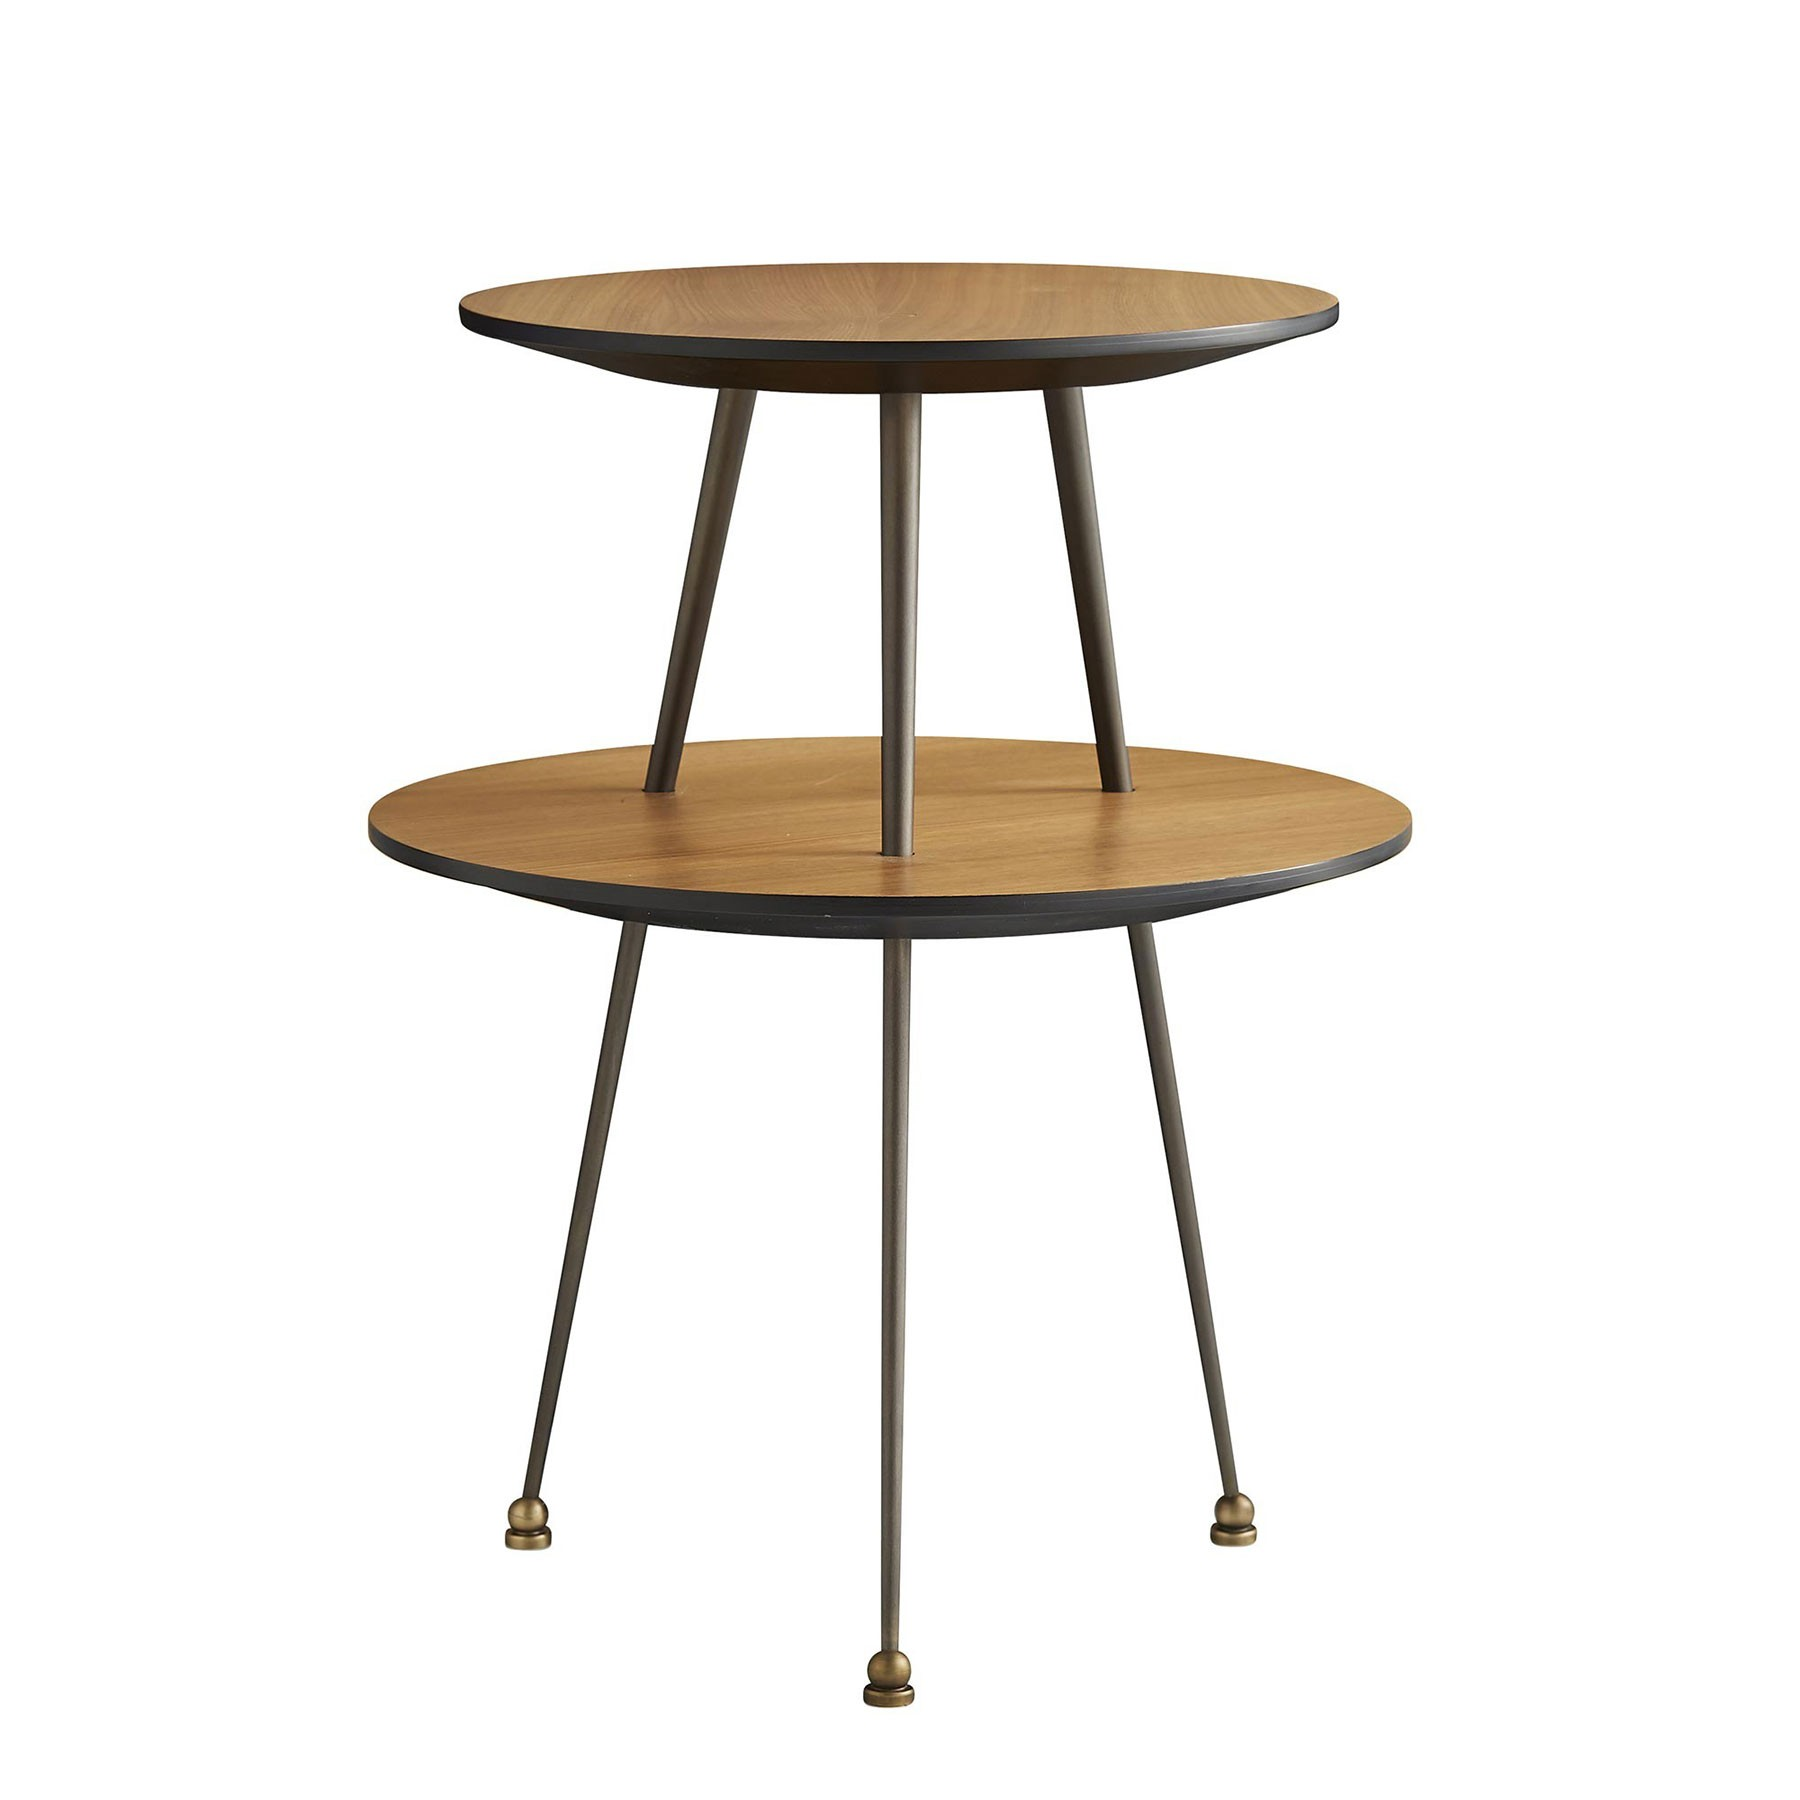 jolie accent table tiered midcentury modern arteriors mid century pier one seat cushions target desks and chairs round black metal side oriental furniture lamps dorm room packages